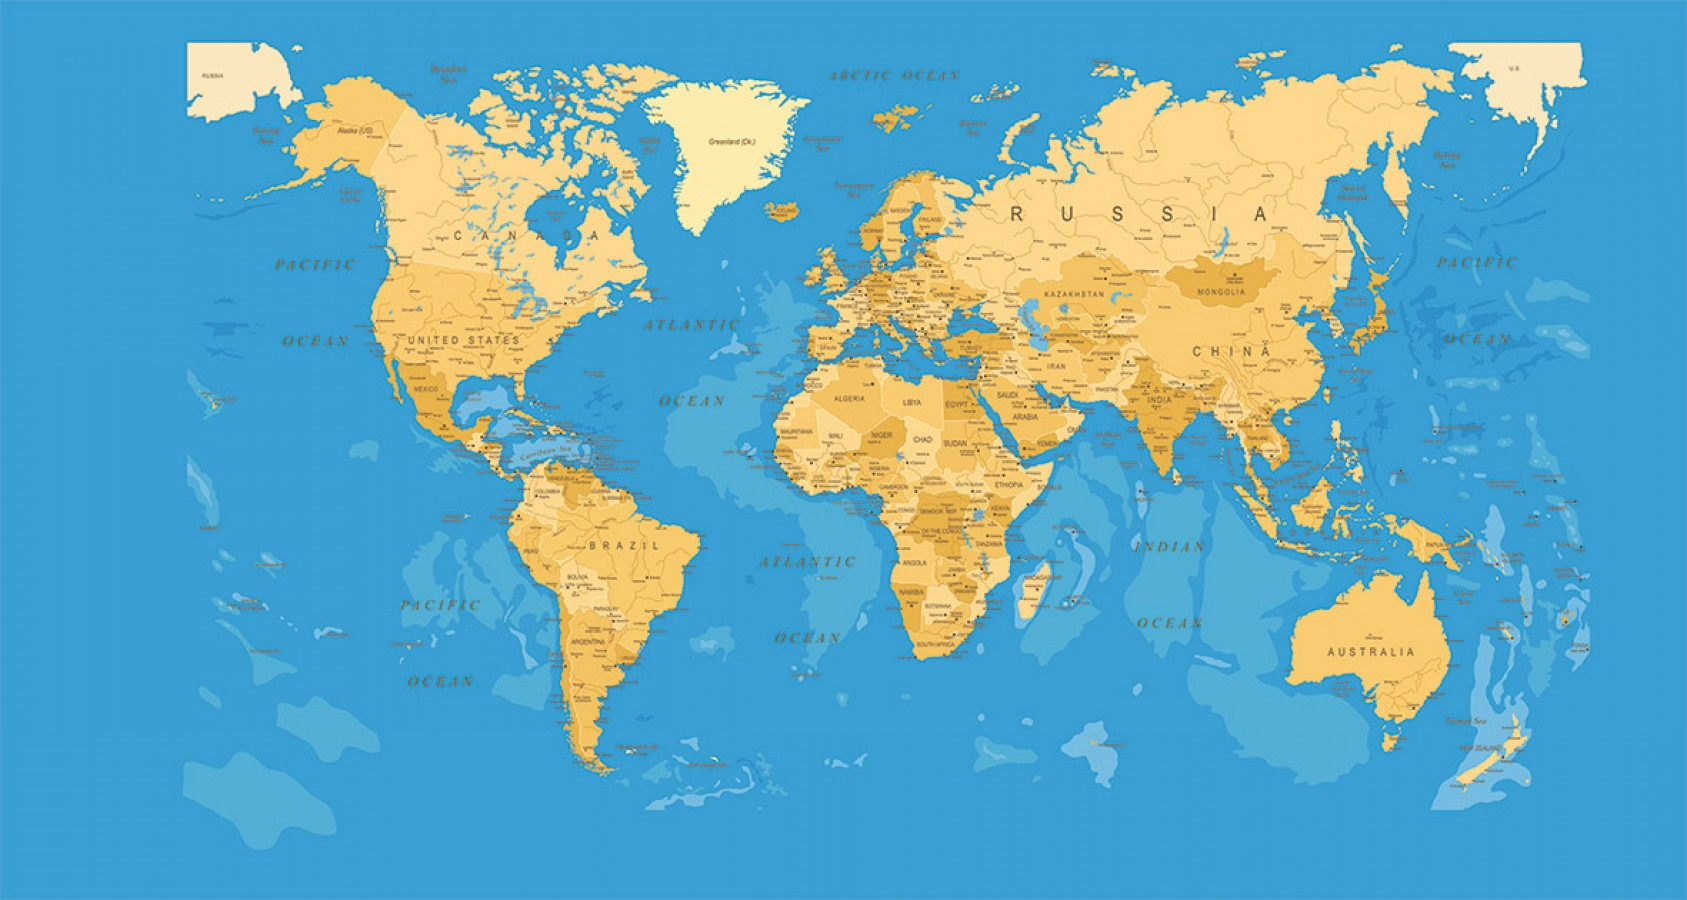 Fotomural Young World Map A08-M909 Fotomural Young World Map A08-M909